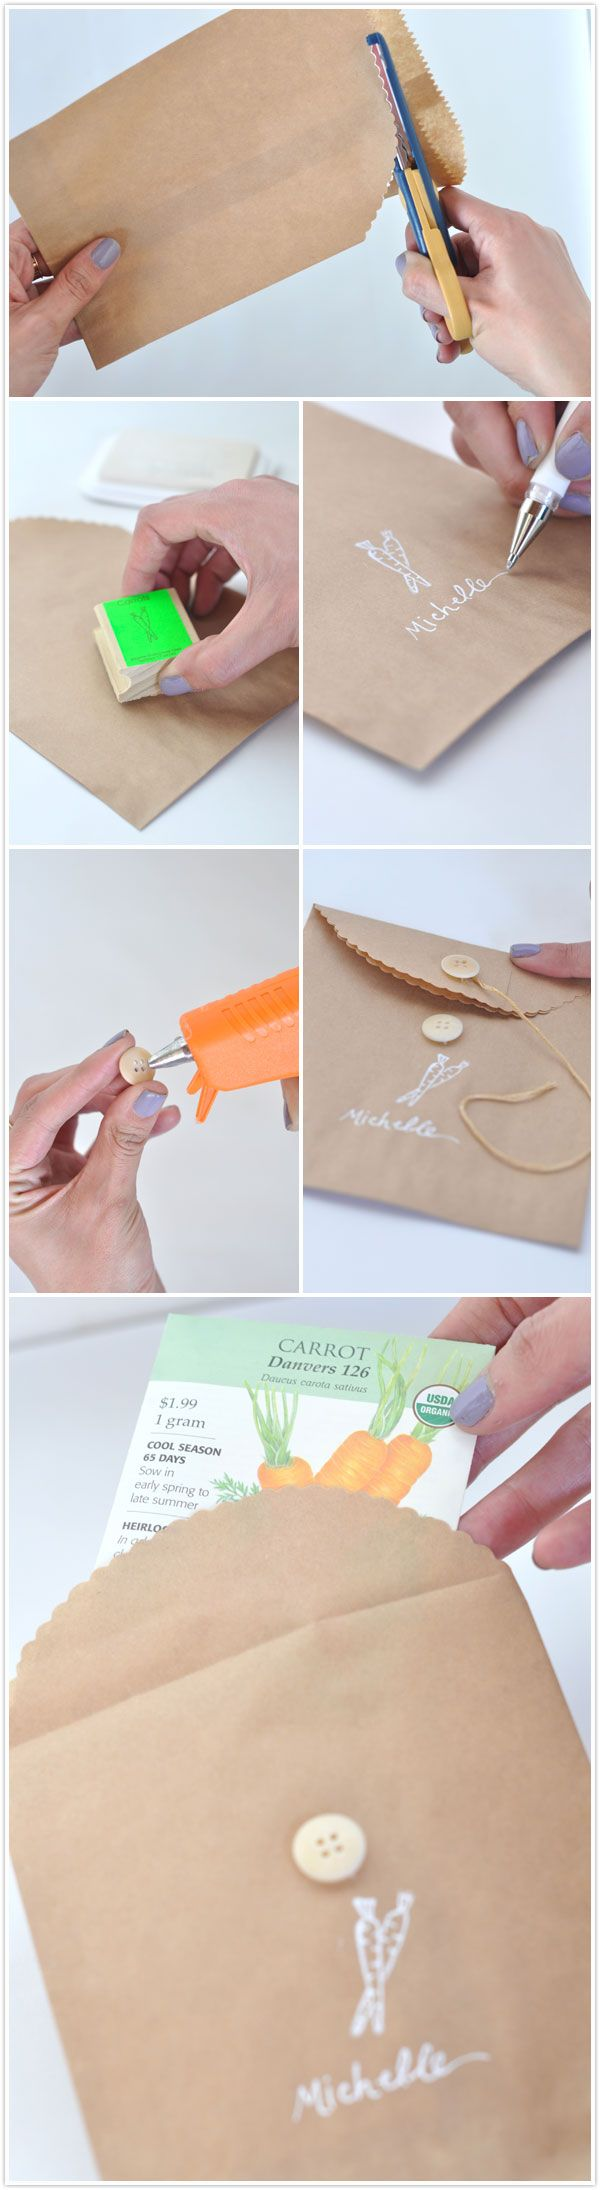 DIY party favor bags.